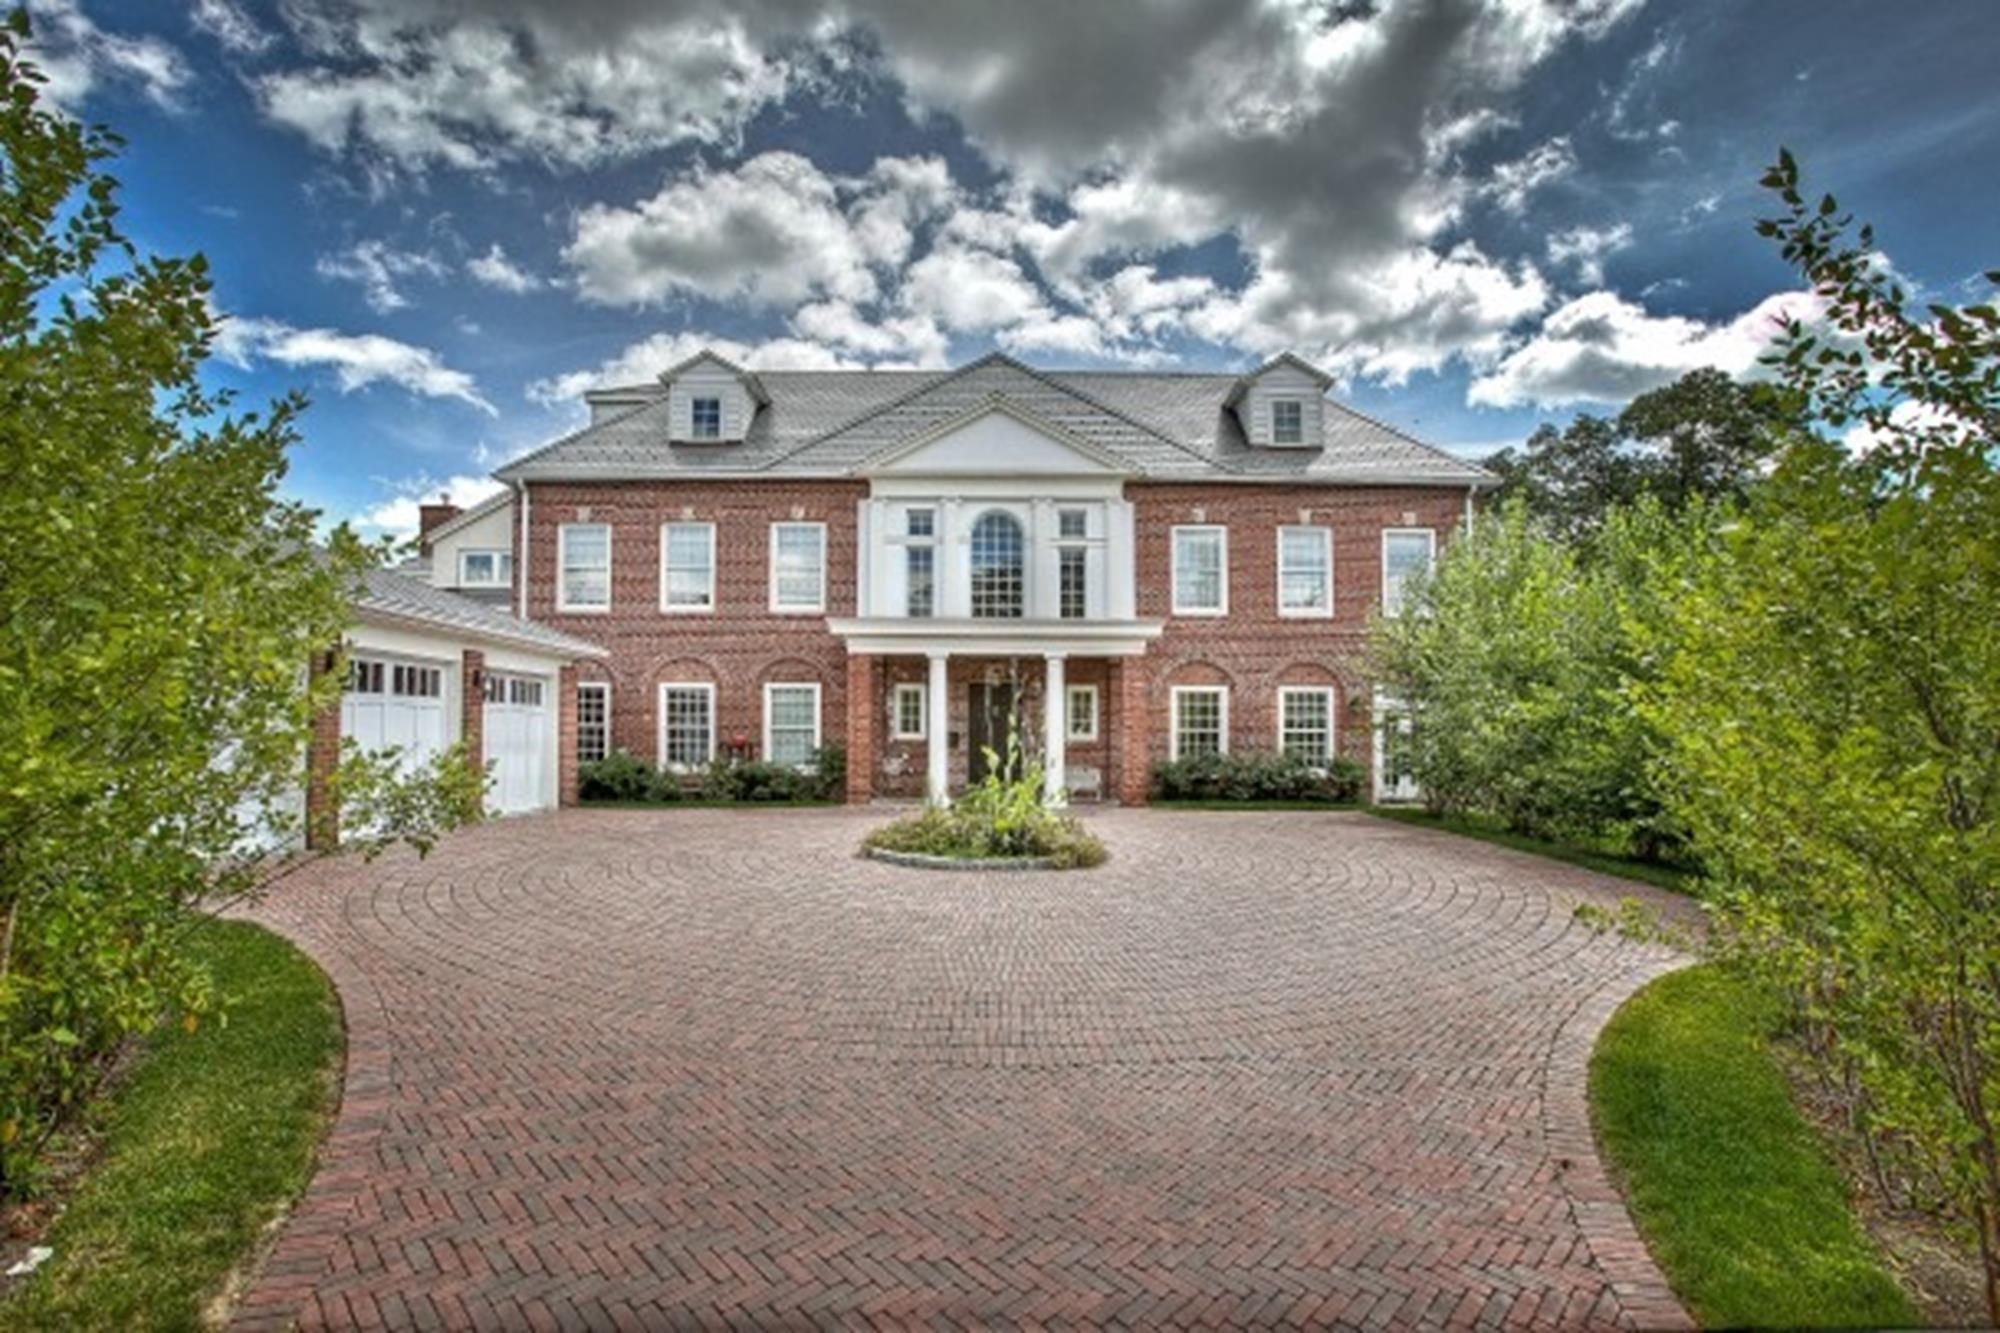 RIVERDALE MANSION:  Classic 7-Bedroom, 7.5-Bath, 9,400+ sq. ft., Georgian-style house in exclusive, private community.  Private outdoor swimming pool.  Attached 3-car garage. Exquisite details & luxurious amenities.